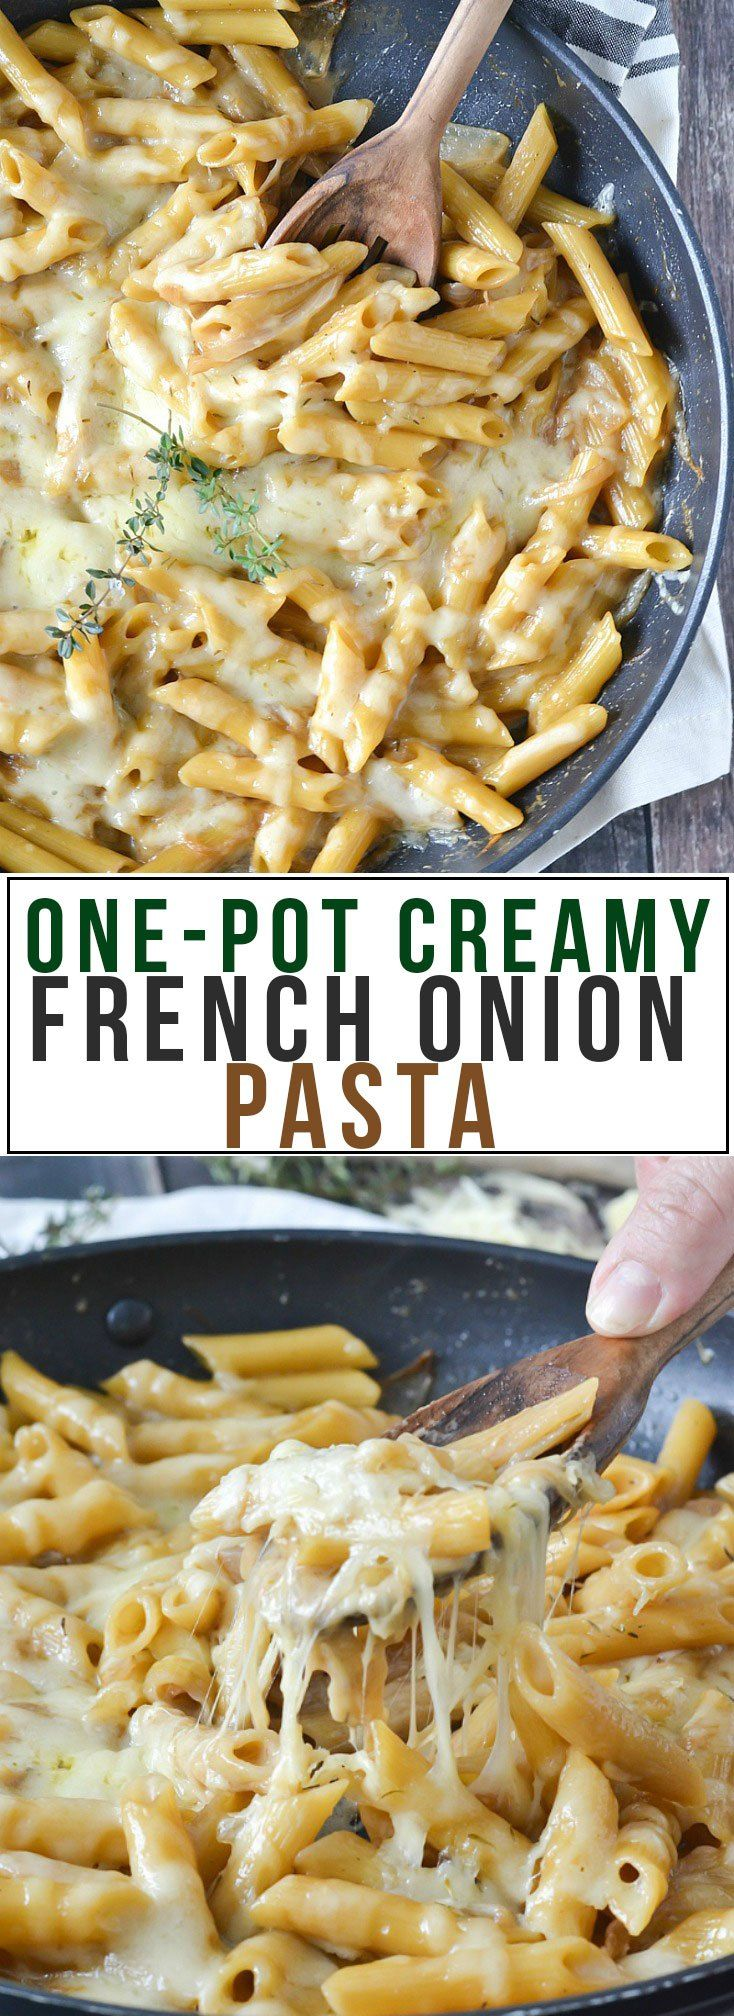 If you love french onion soup, you're going to love this One-Pot CreamyFrench Onion Pasta loaded with caramelized onions in a creamy and delicious sauce.